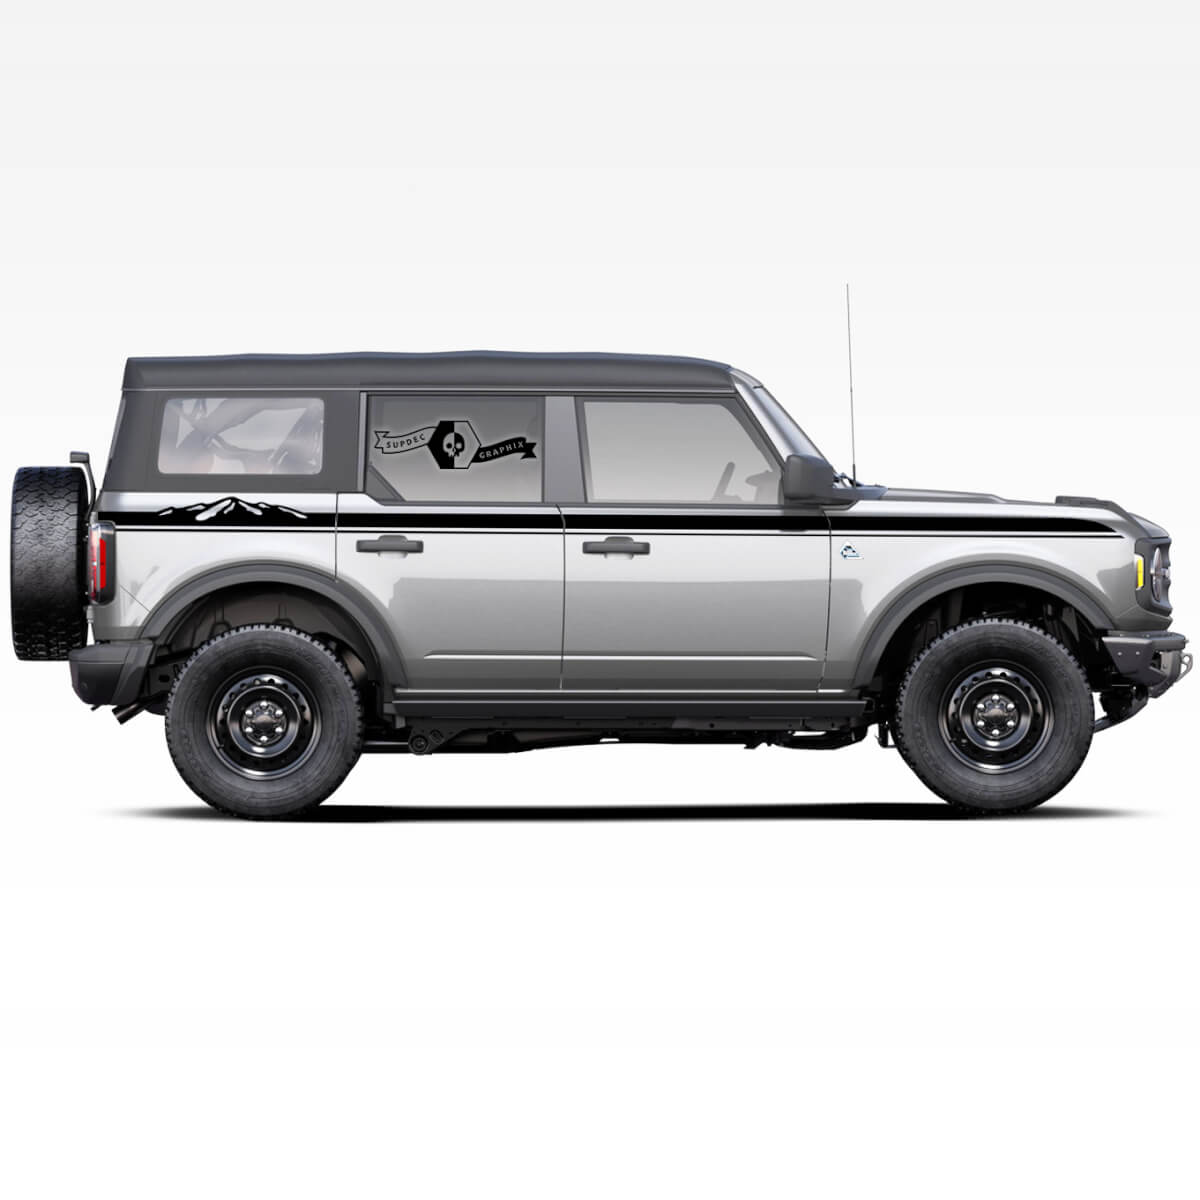 Pair of Mountains Style Rocker Panel Side Stripes Decals Stickers for Ford Bronco 2021 - now